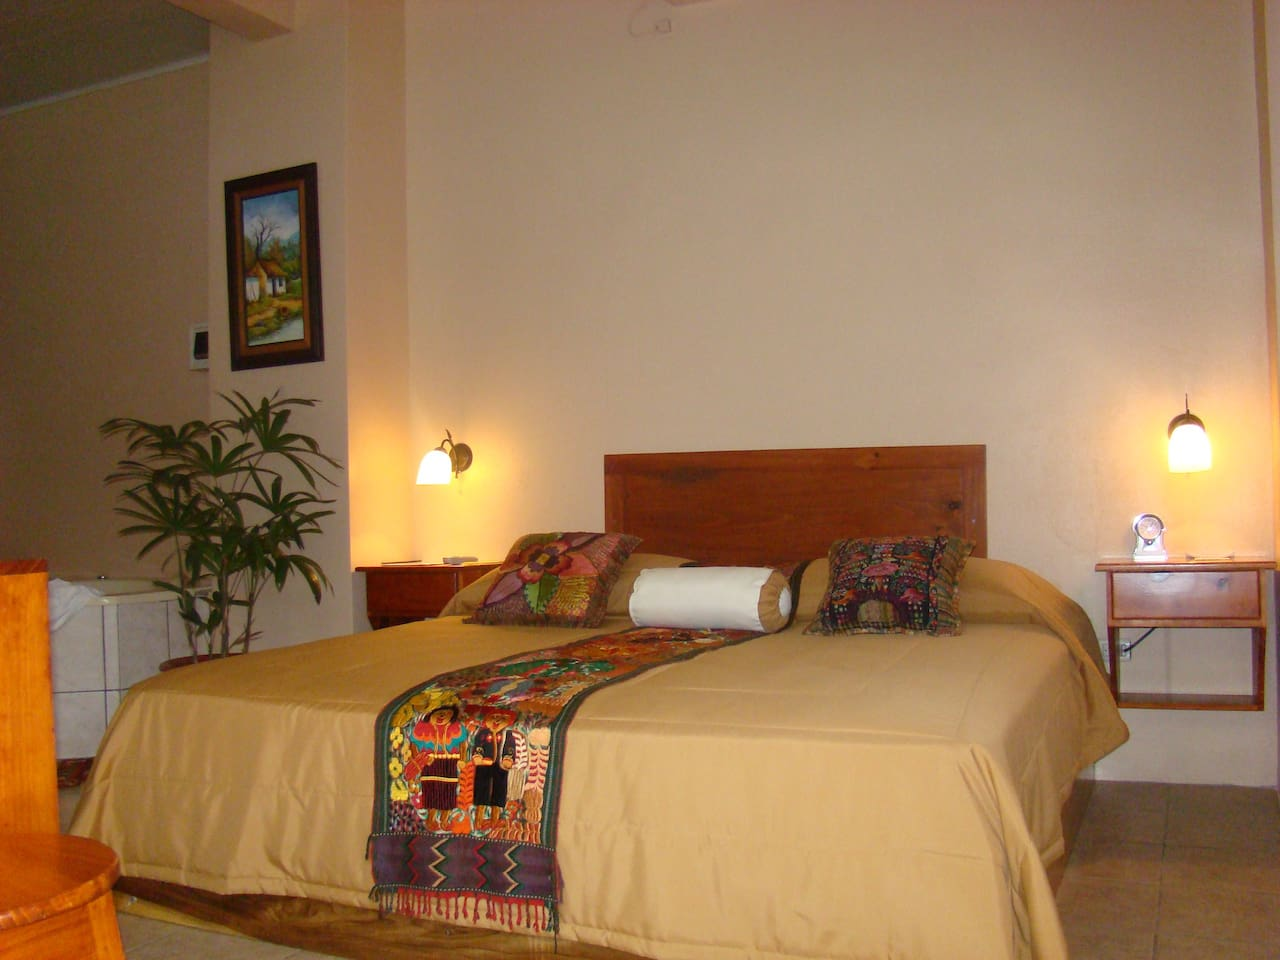 Rooms at Las Colinas Arenal Hotel, Arenal Volcano, Costa Rica